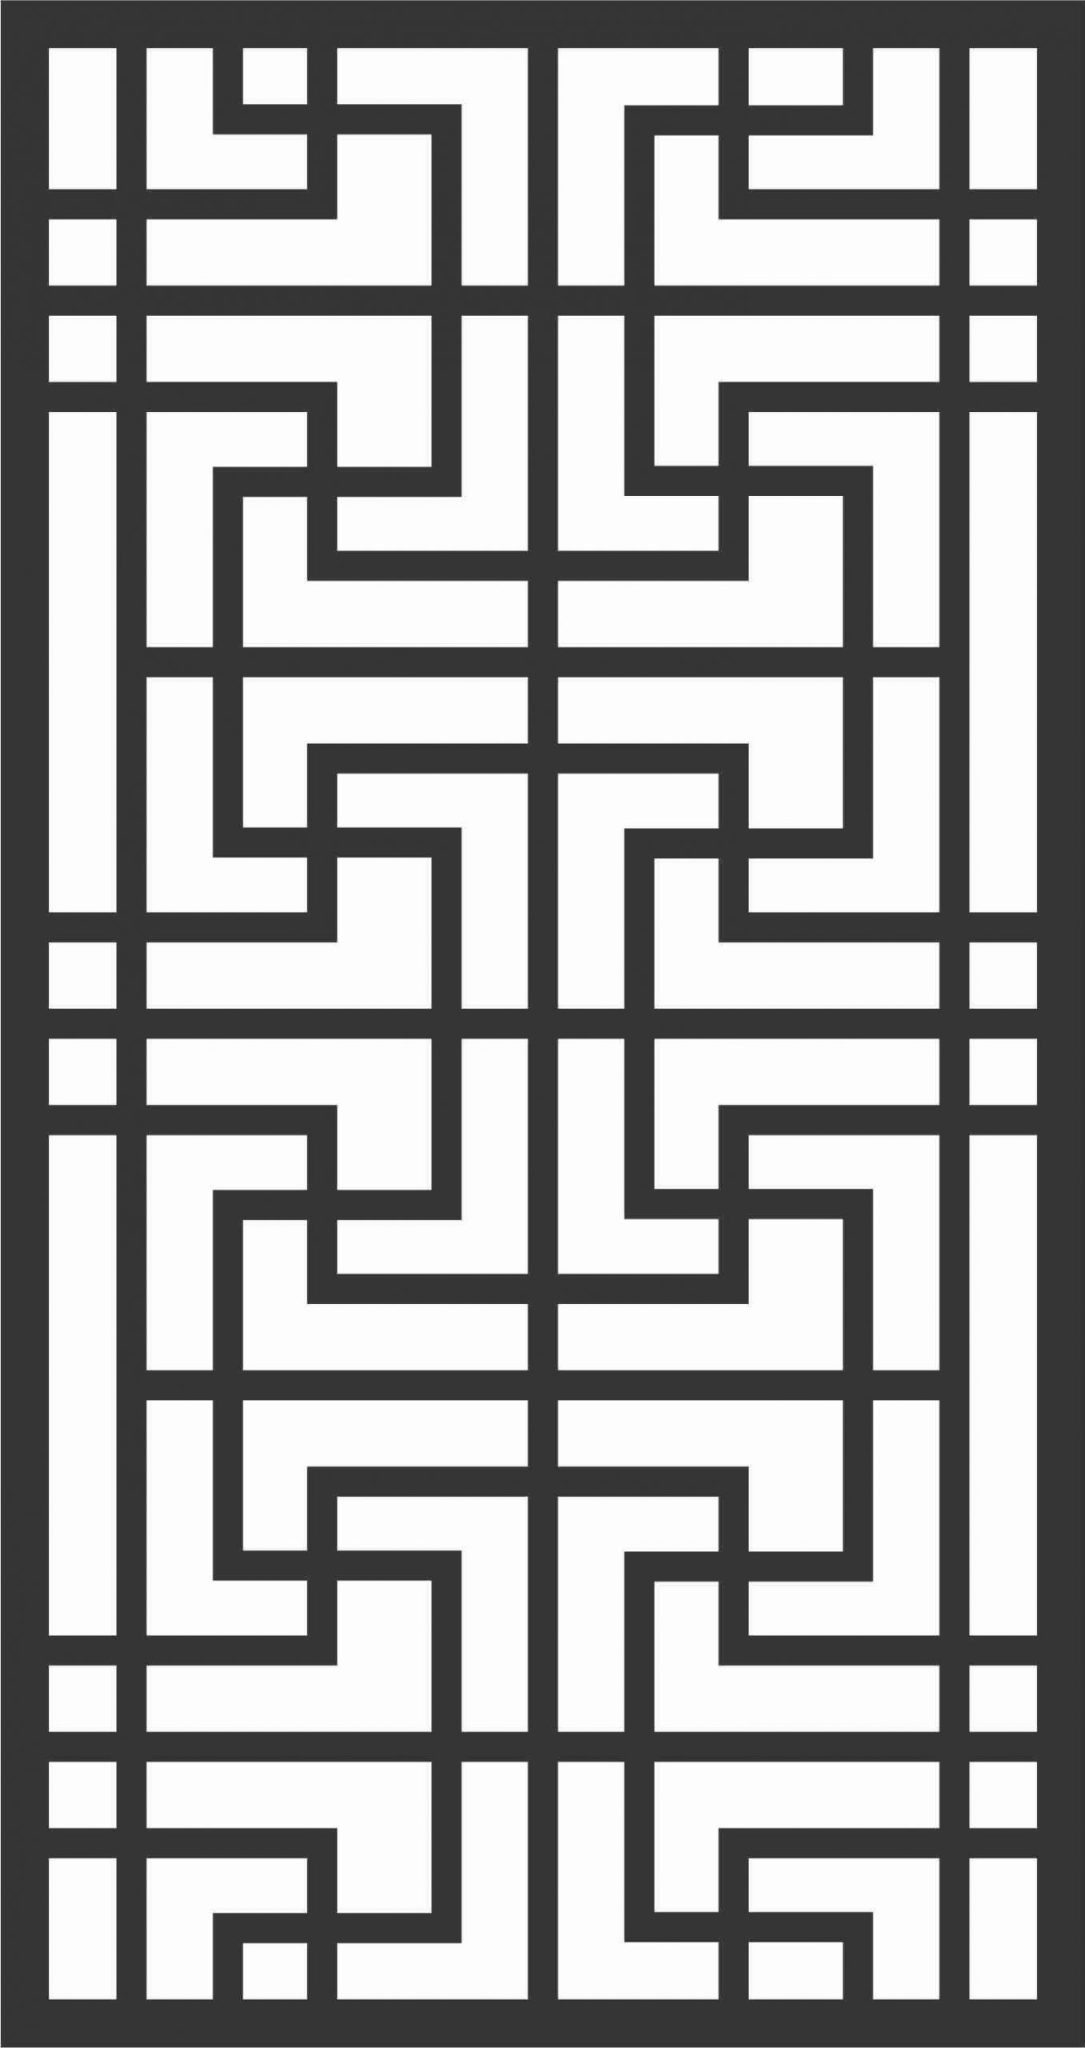 Decorative Screen Patterns For Laser Cutting 76 Free DXF File